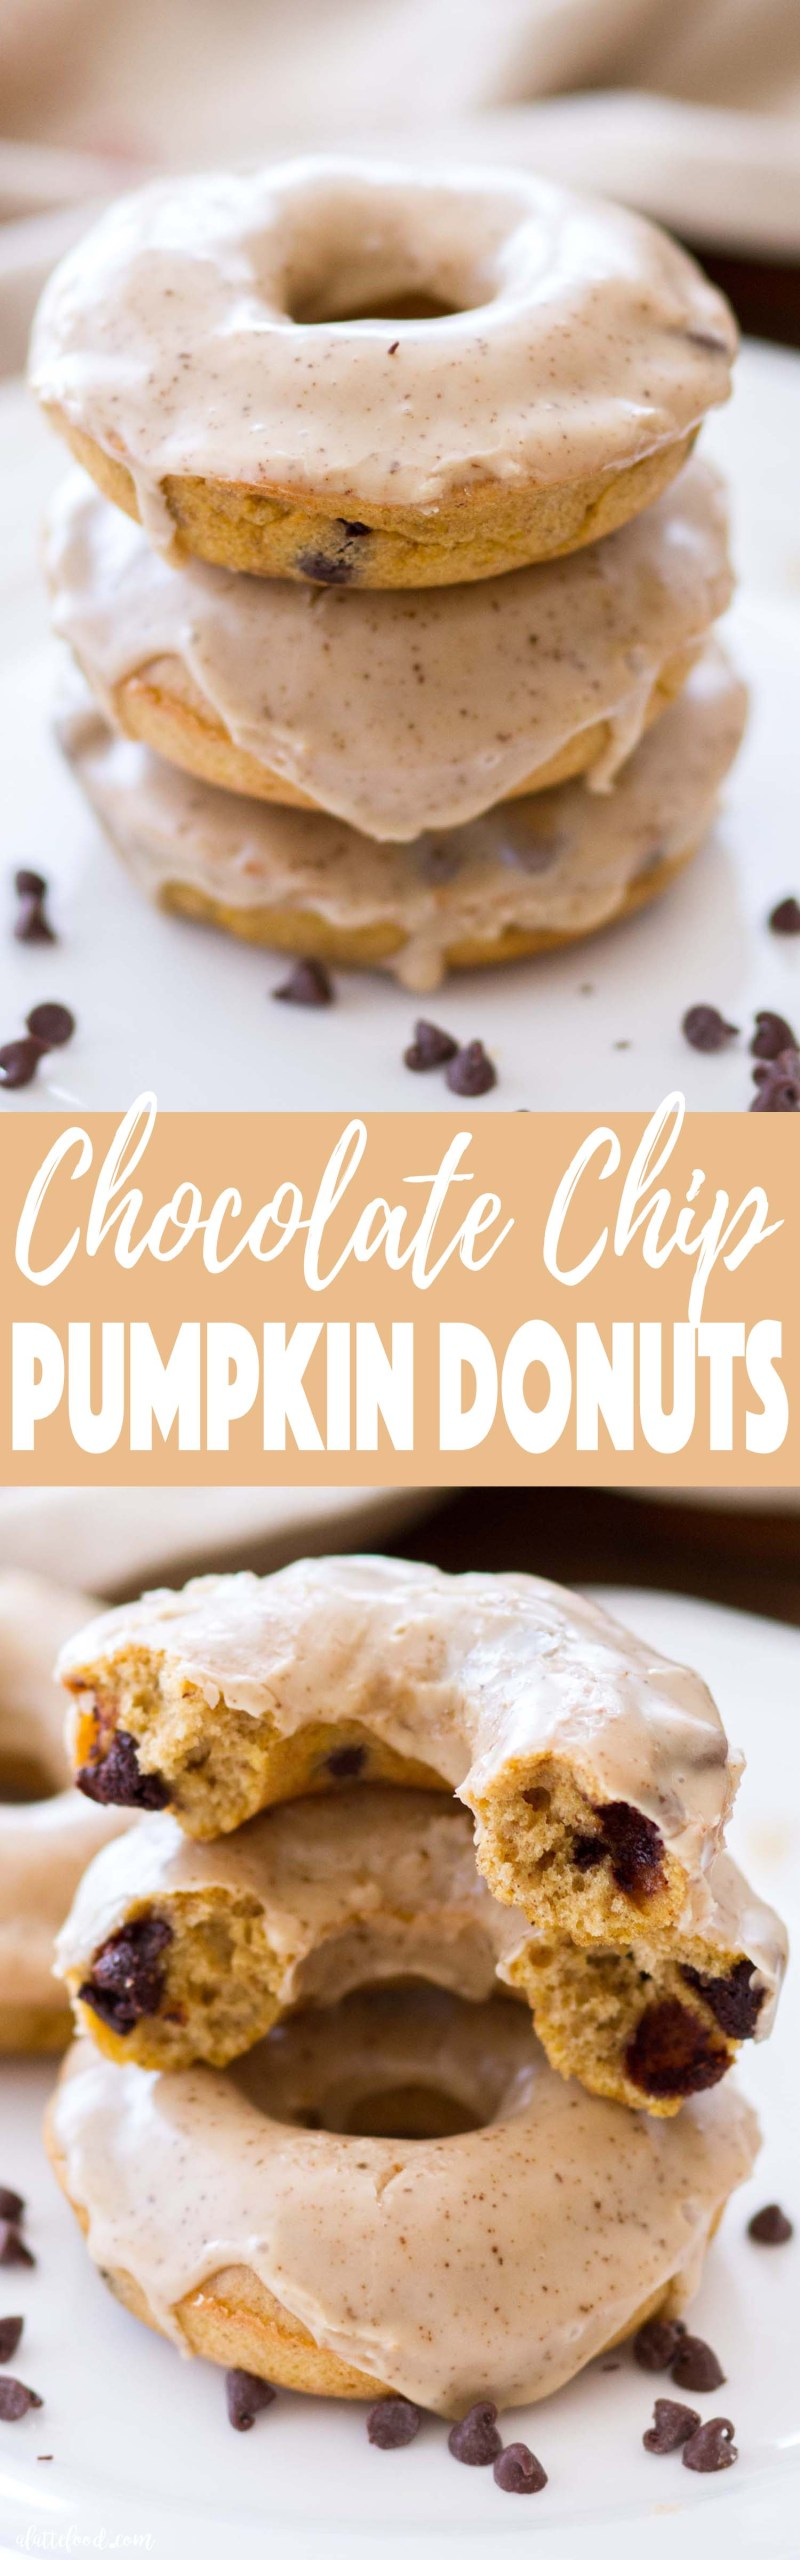 Chocolate Chip Pumpkin Donuts -- These Chocolate Chip Pumpkin Donuts are baked instead of fried! These homemade pumpkin donuts are perfect for a fall breakfast or sweet fall dessert. Plus, this pumpkin donut recipe is so easy! And, it's topped with a sweet Cinnamon Espresso Glaze!